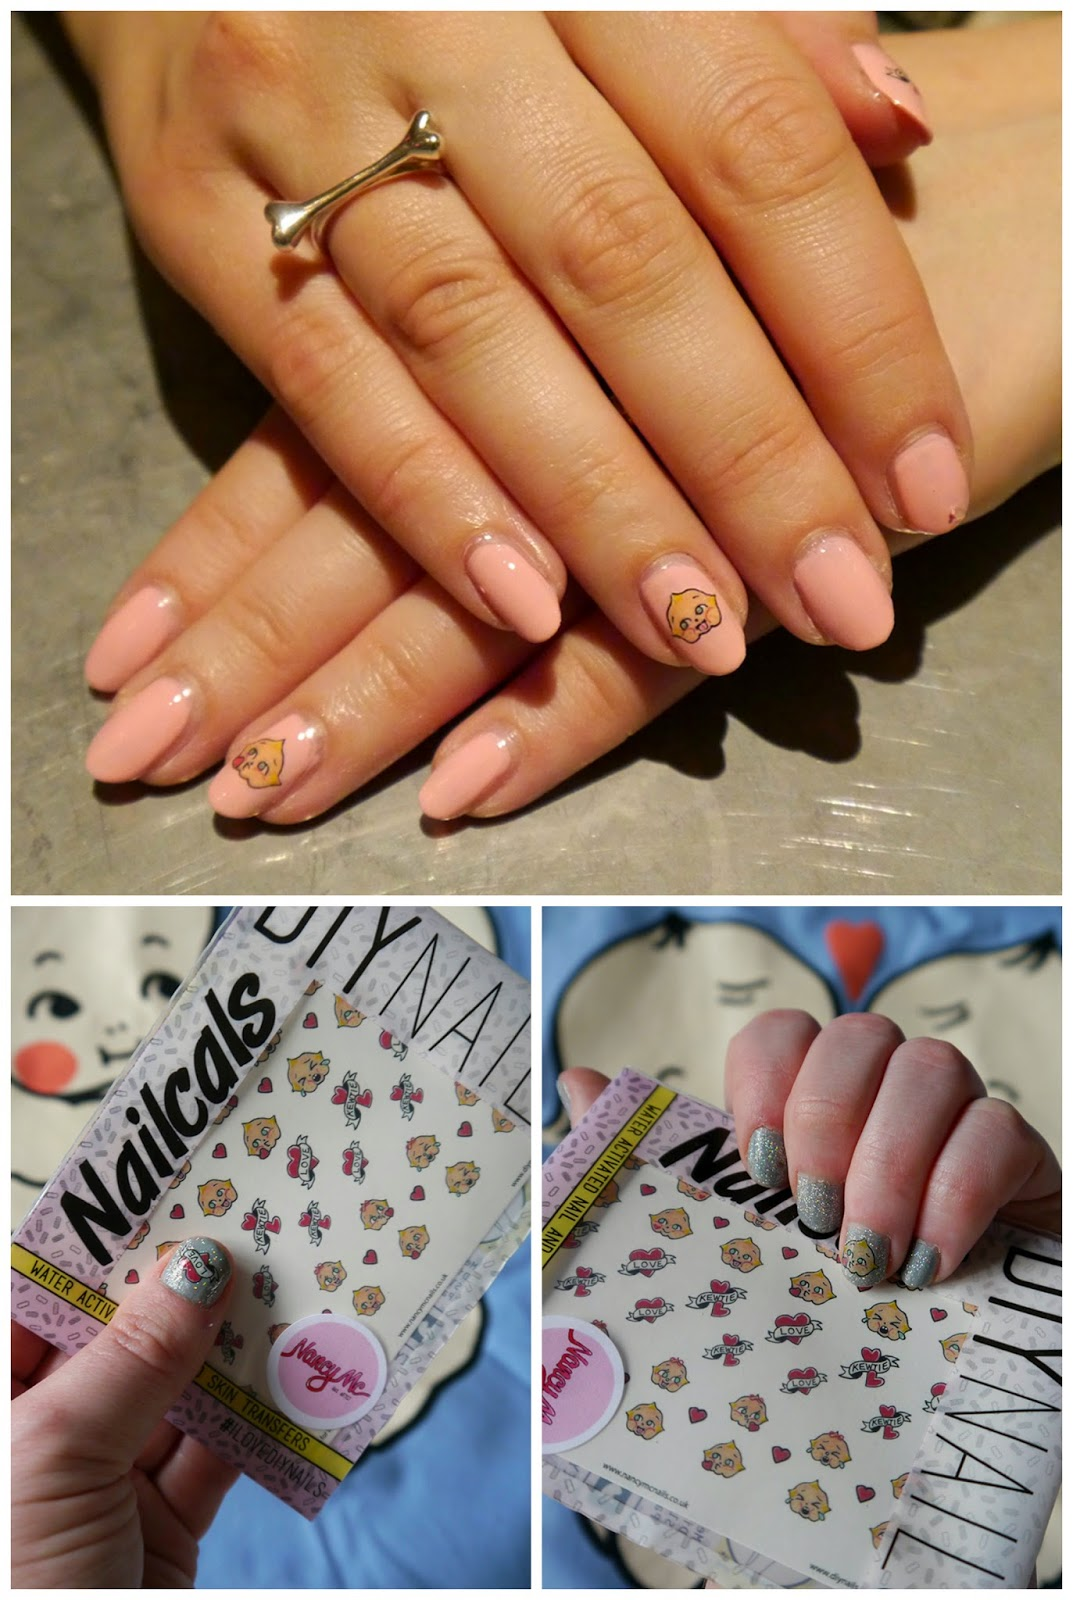 Abandon Ship Apparel, Kewpie collection, Kewpie Party, Glasgow, DIY Nails, Scottish Bloggers, Sacha Make Up, Sacha Nails, Kewpie nails, Nail art, DIY Nails